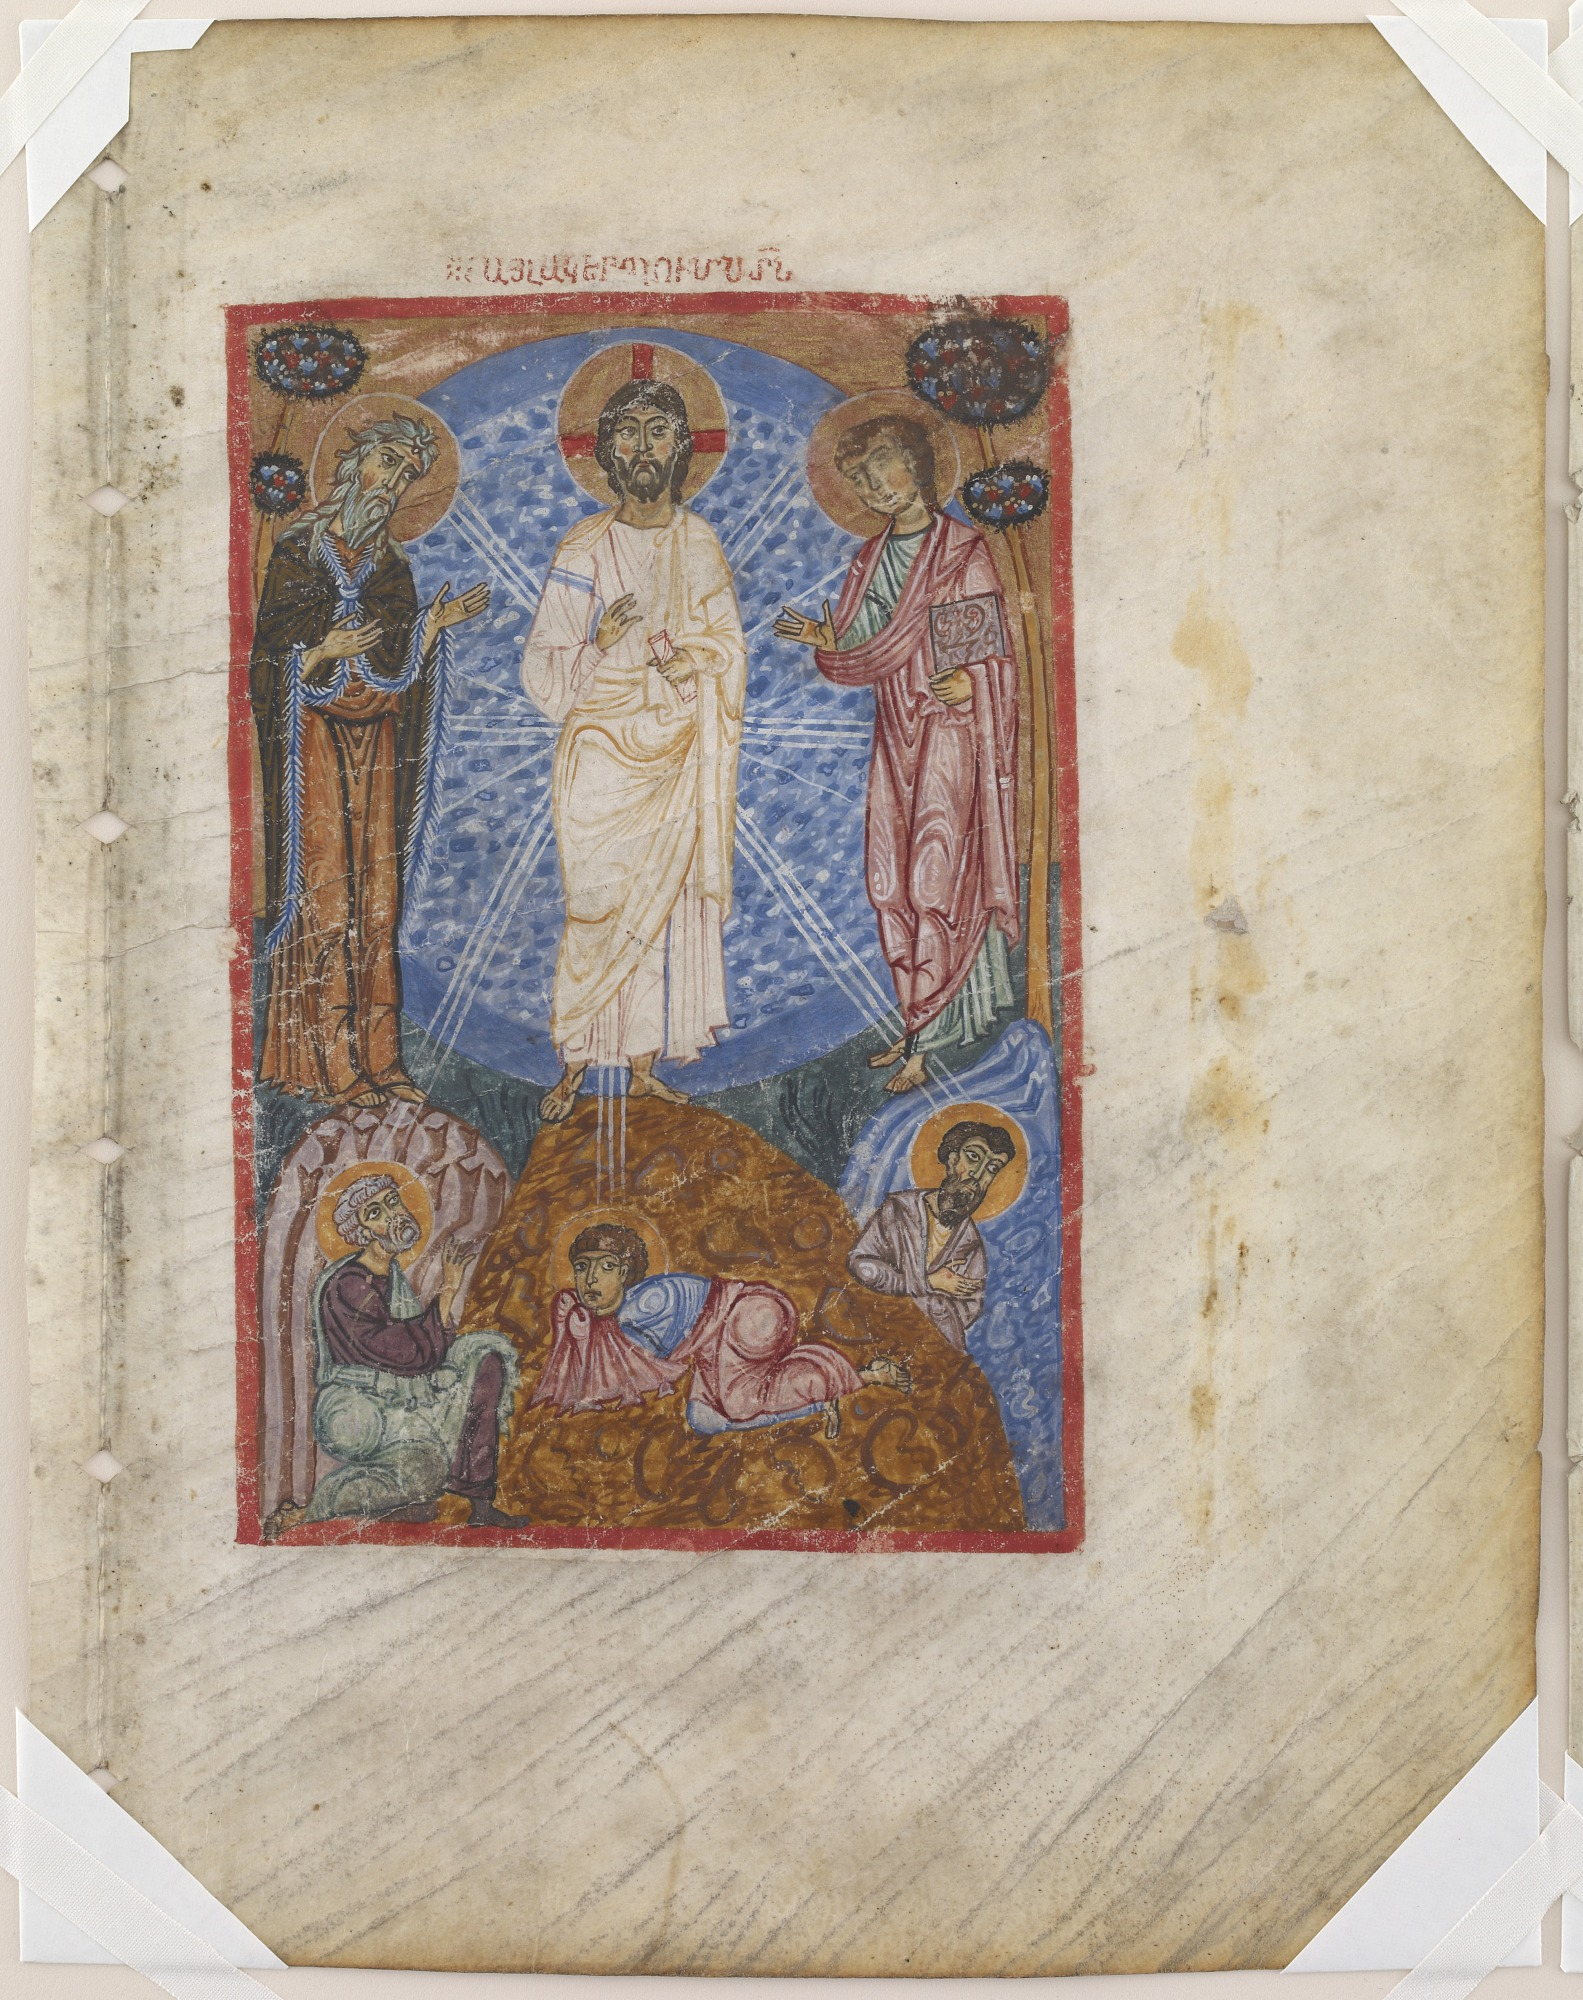 folio 100: Copy of The Gospel according to the four Evangelists